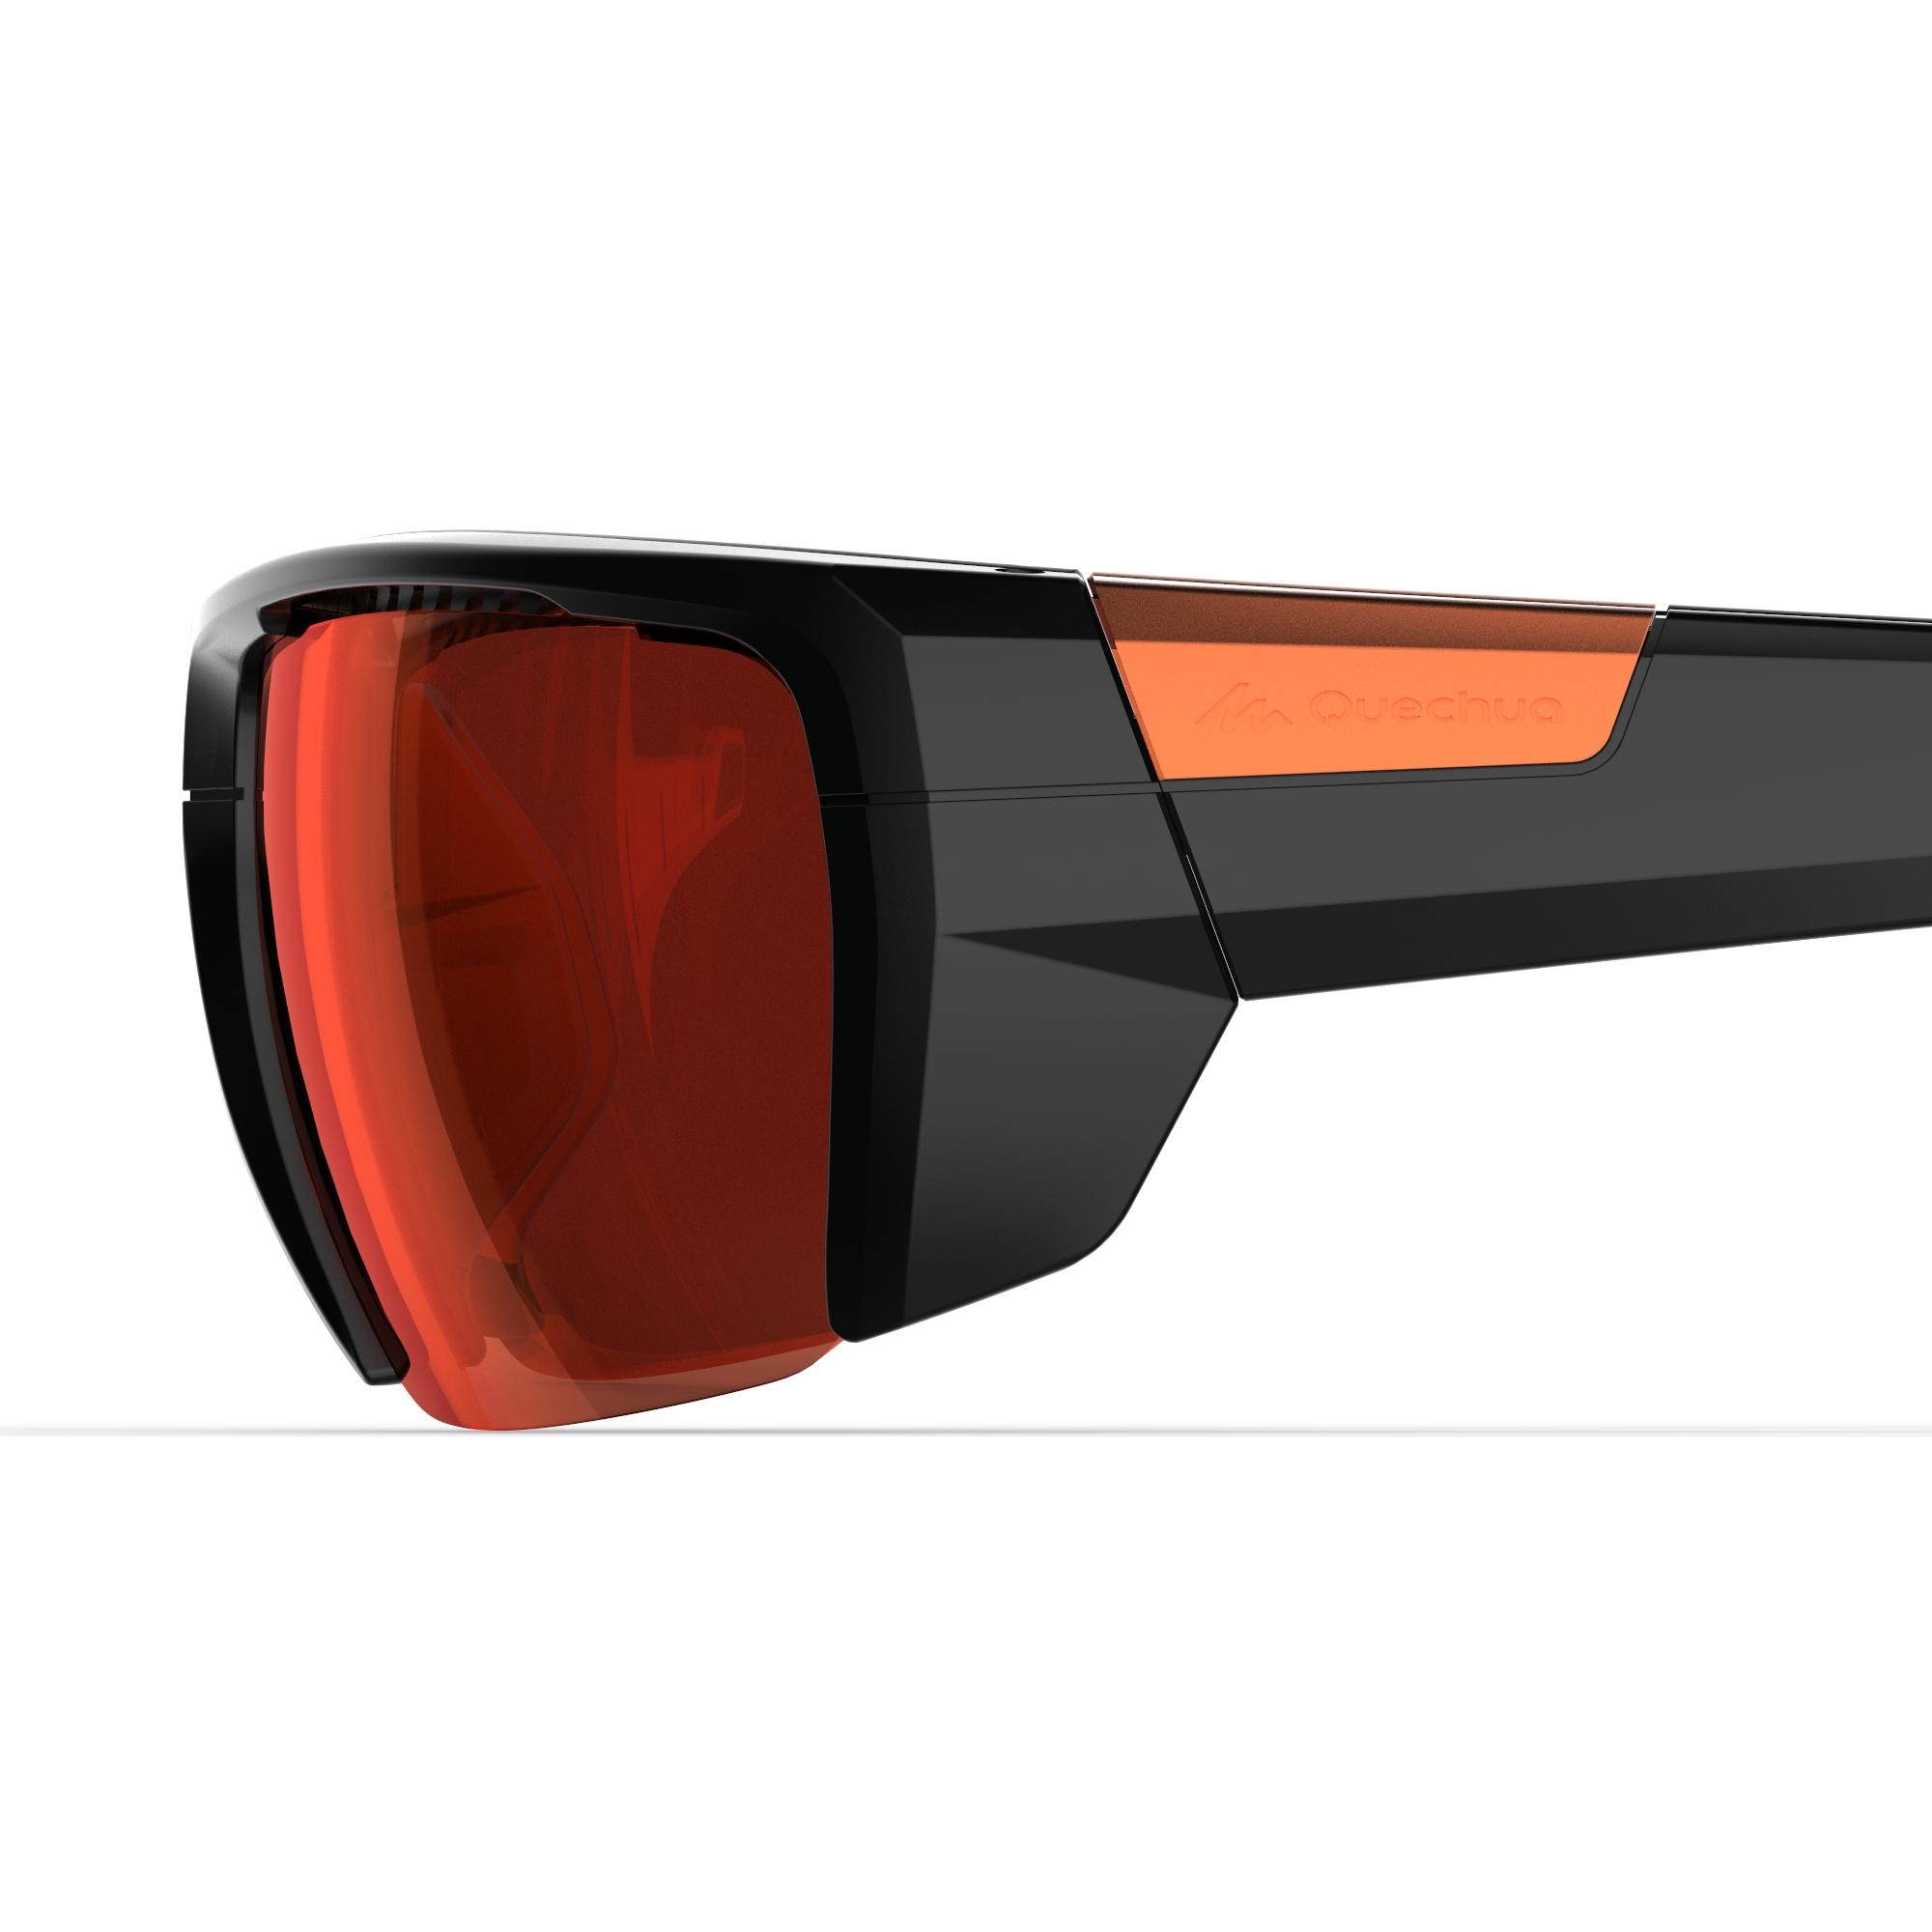 MH590 Adult Category 4 Polarised Hiking Glasses – Black and Orange